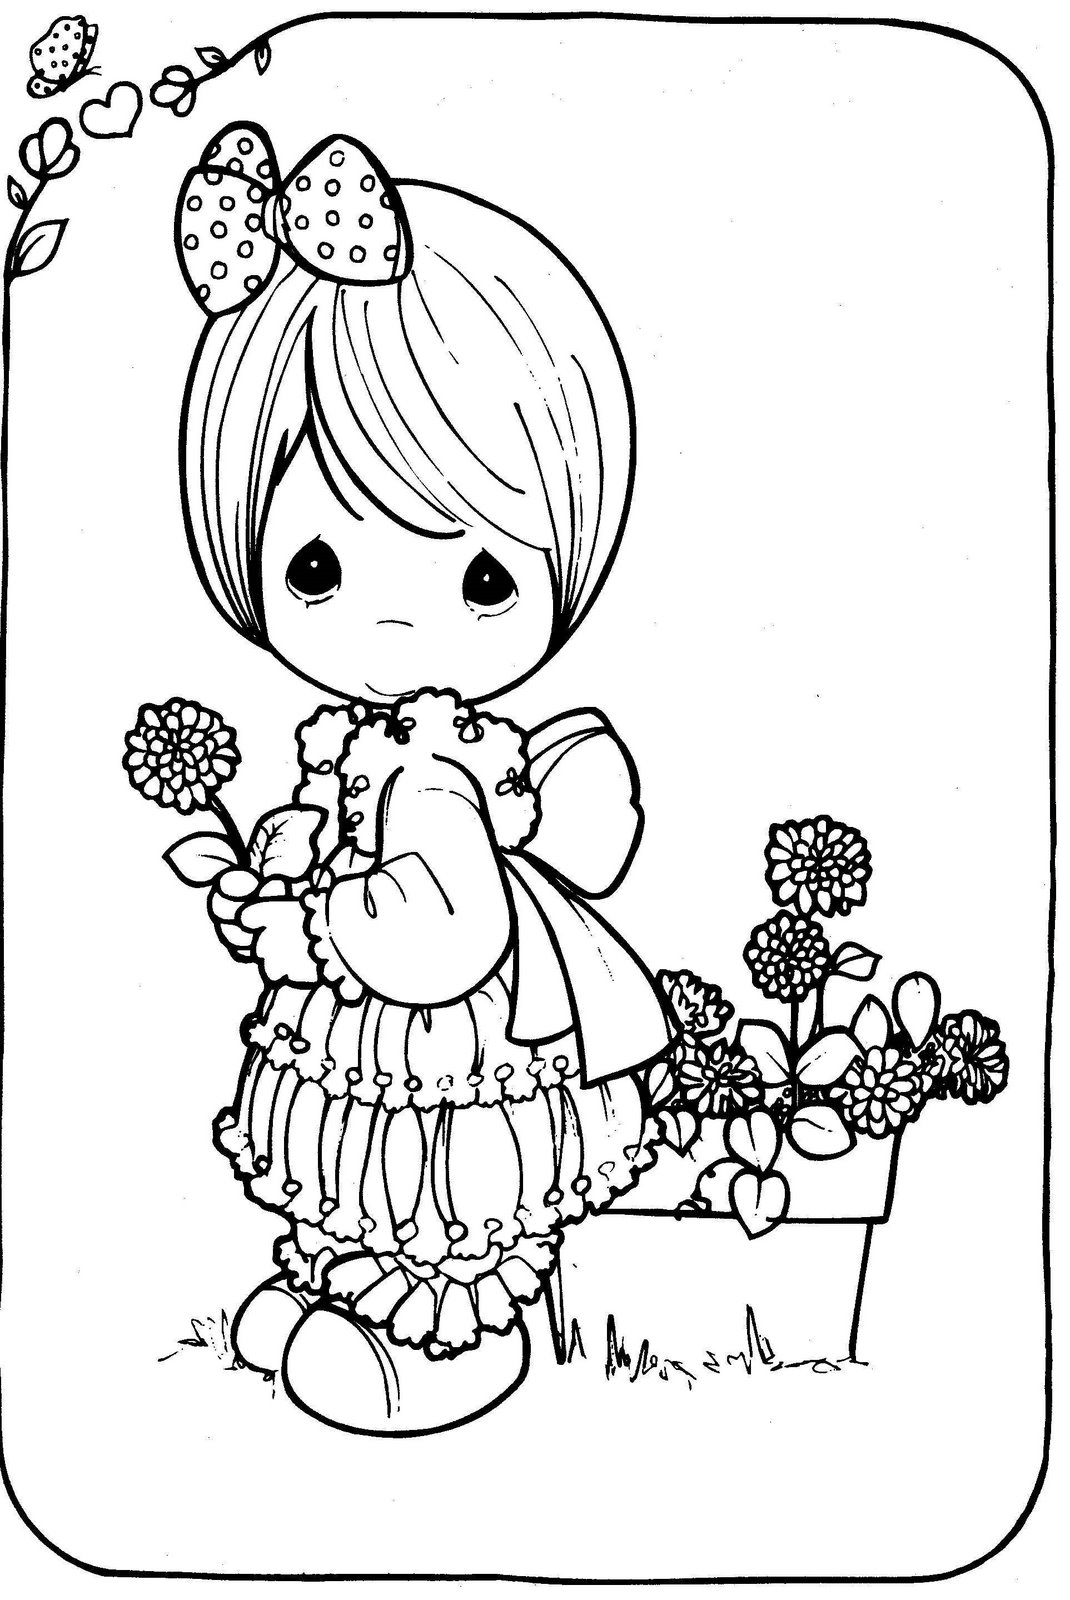 black girl coloring pages - drawing girl precious moments in black and white to color